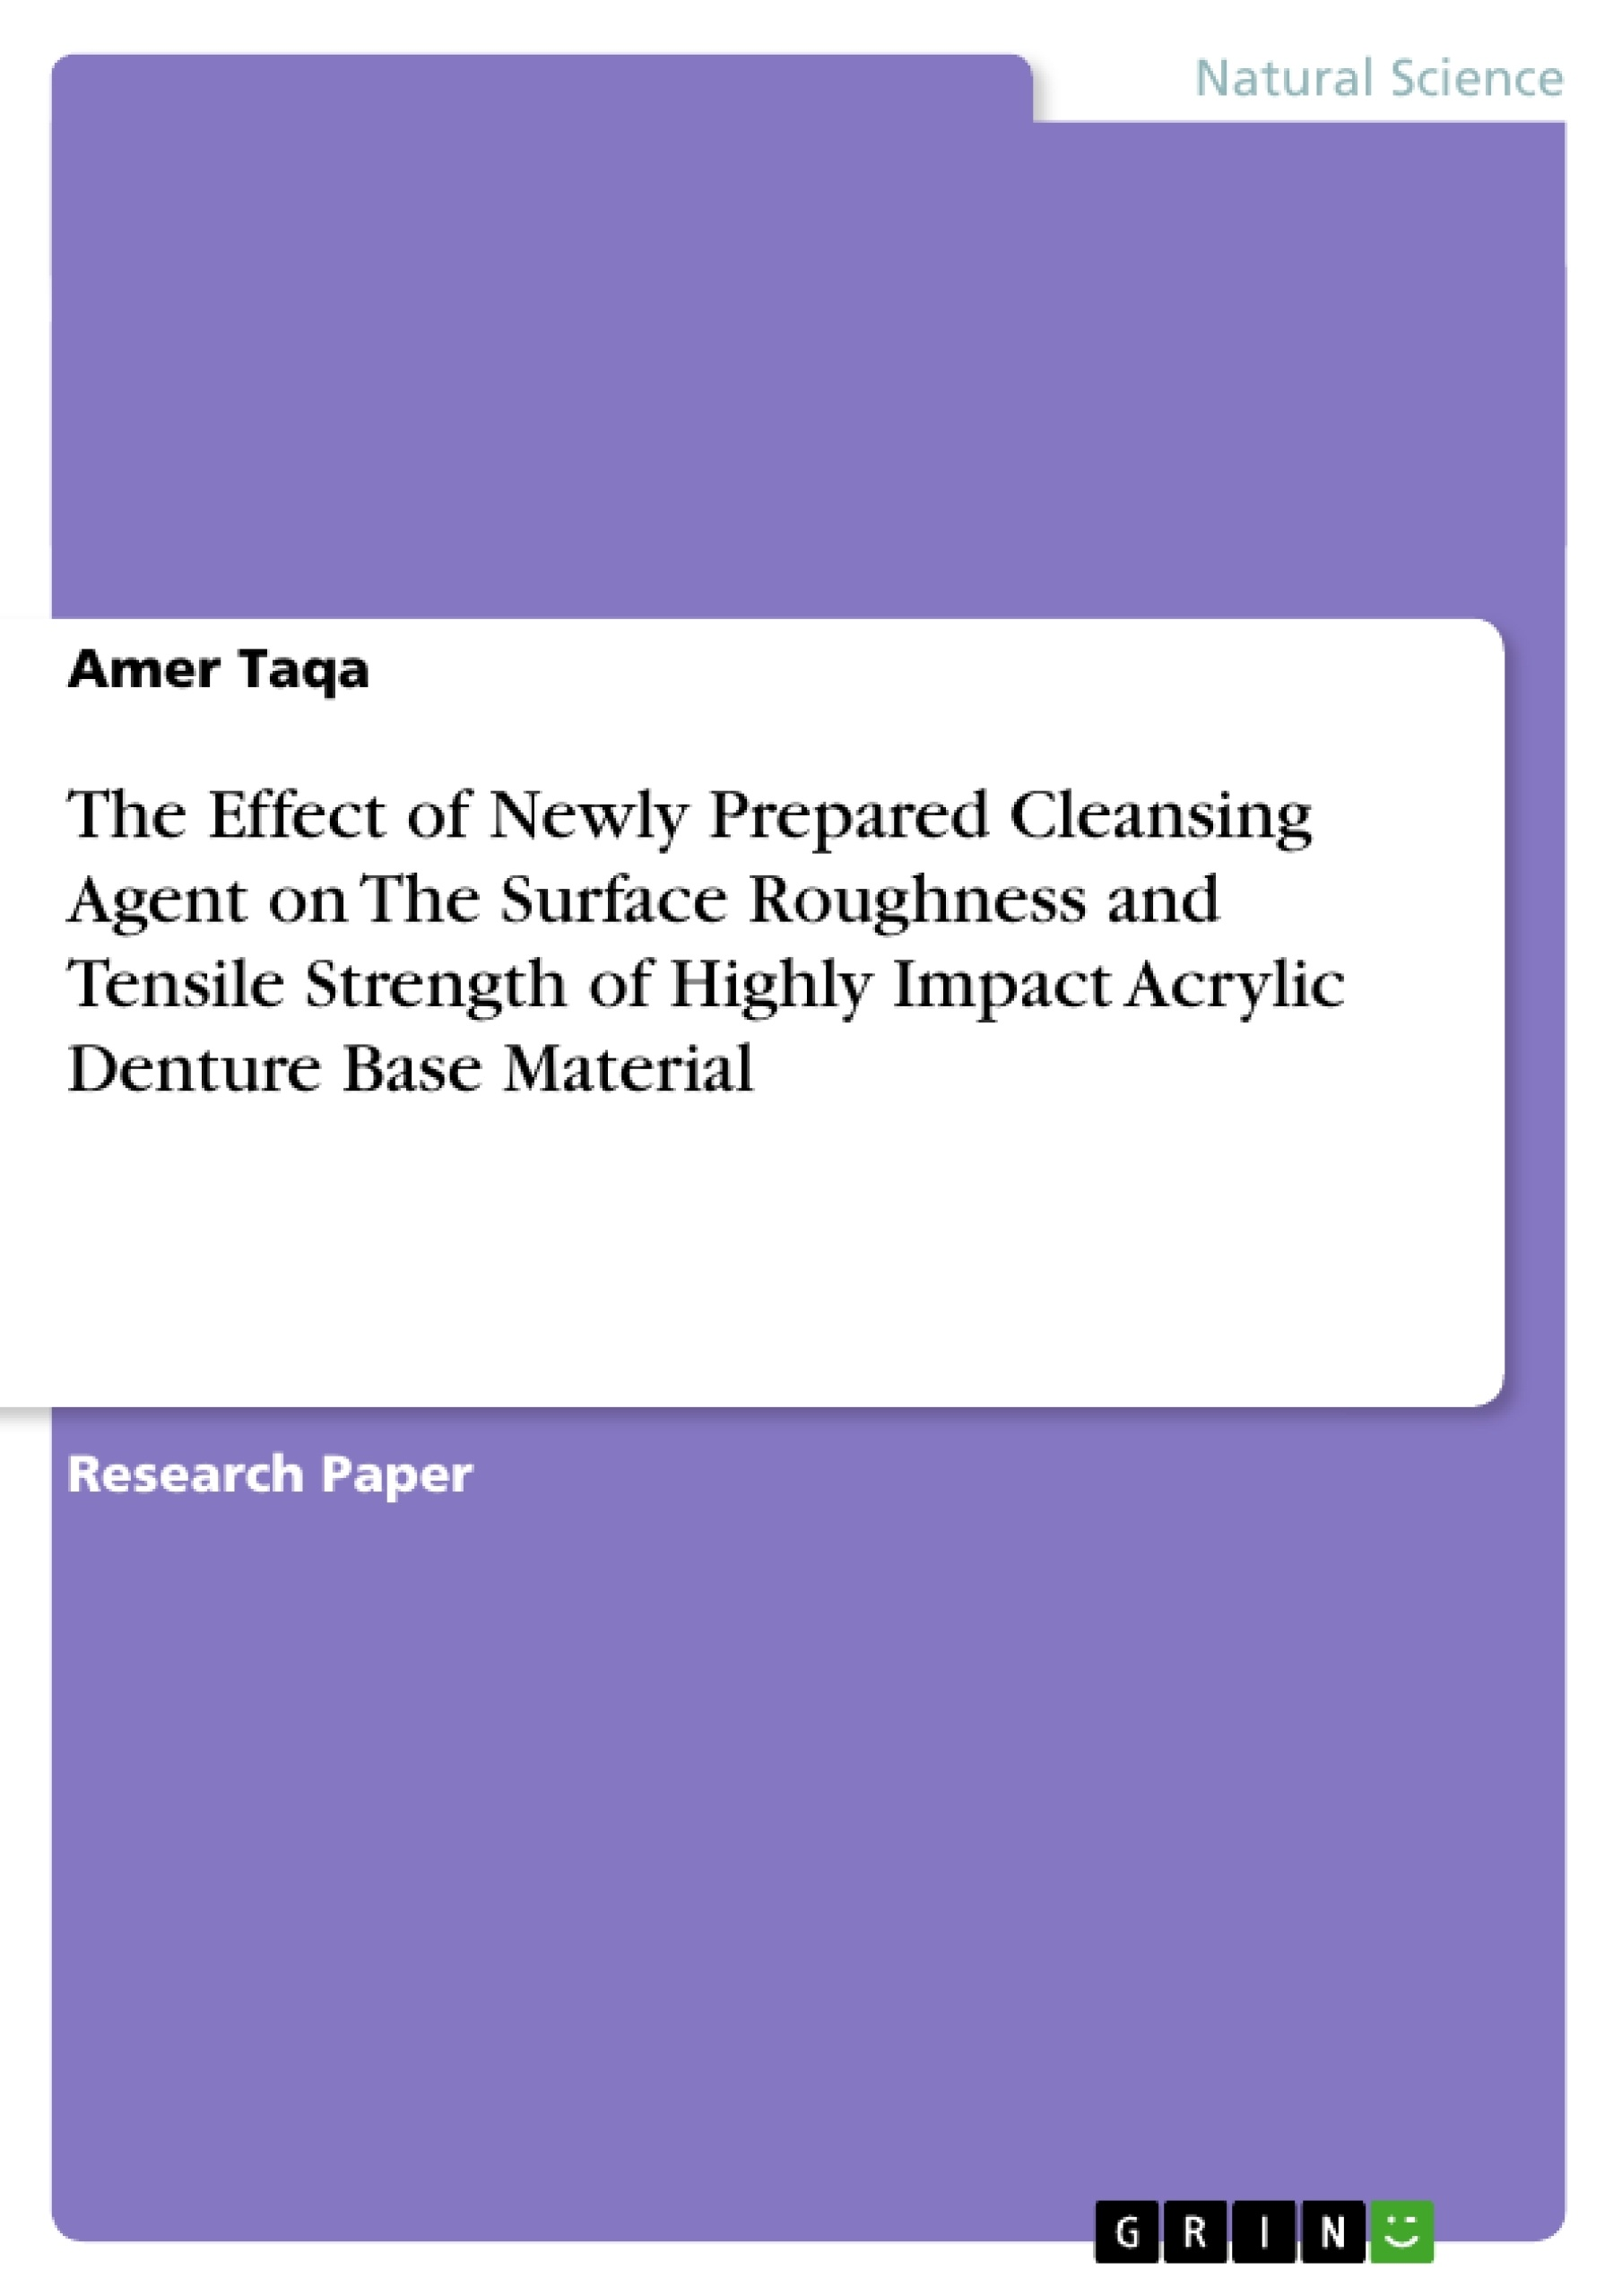 Title: The Effect of Newly Prepared Cleansing Agent on The Surface Roughness and Tensile Strength of Highly Impact Acrylic Denture Base Material